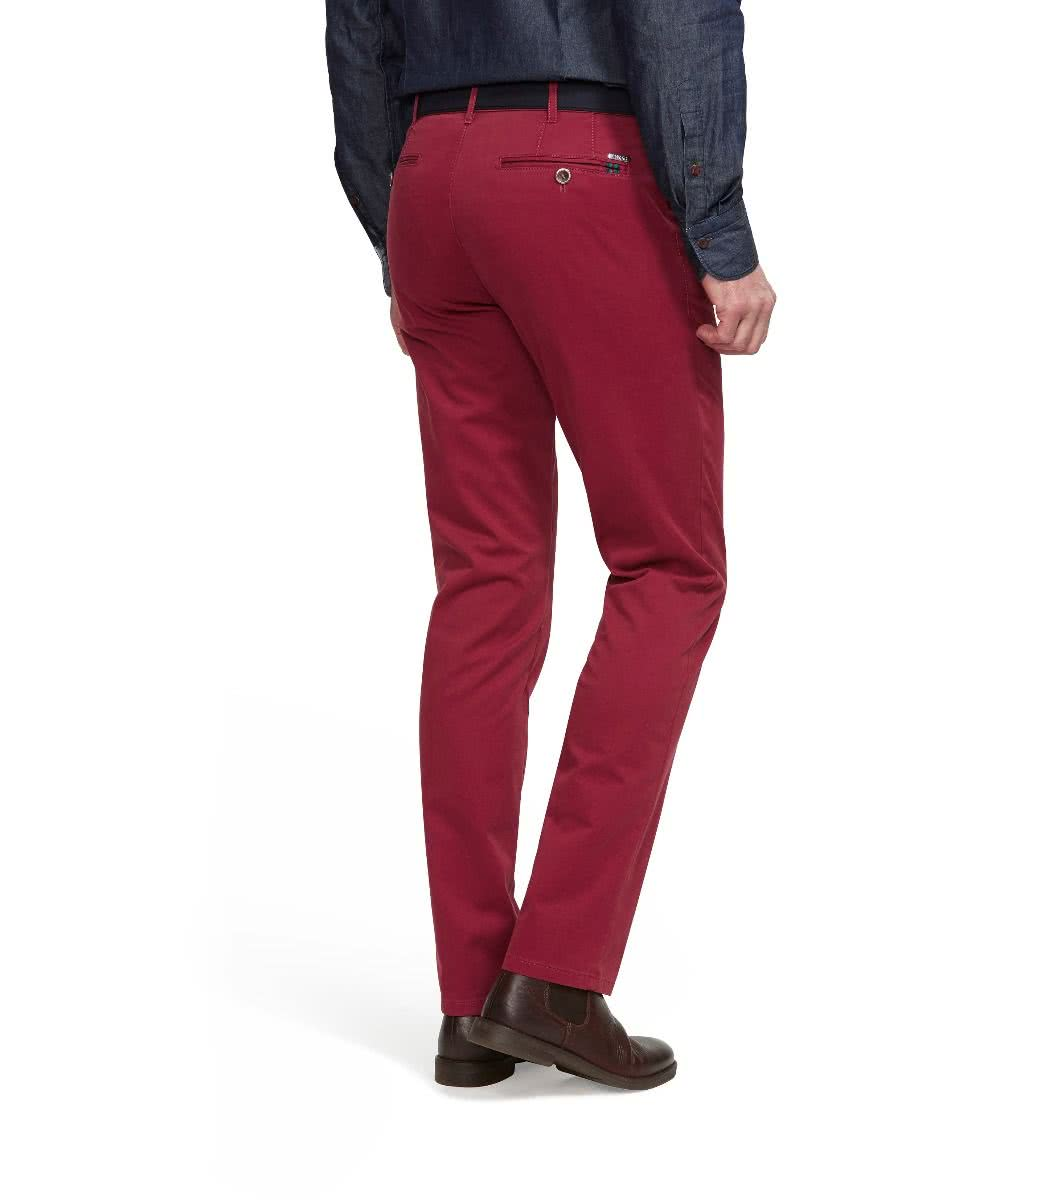 MEYER Roma Modern Slim Stretch Cotton Trousers - Red